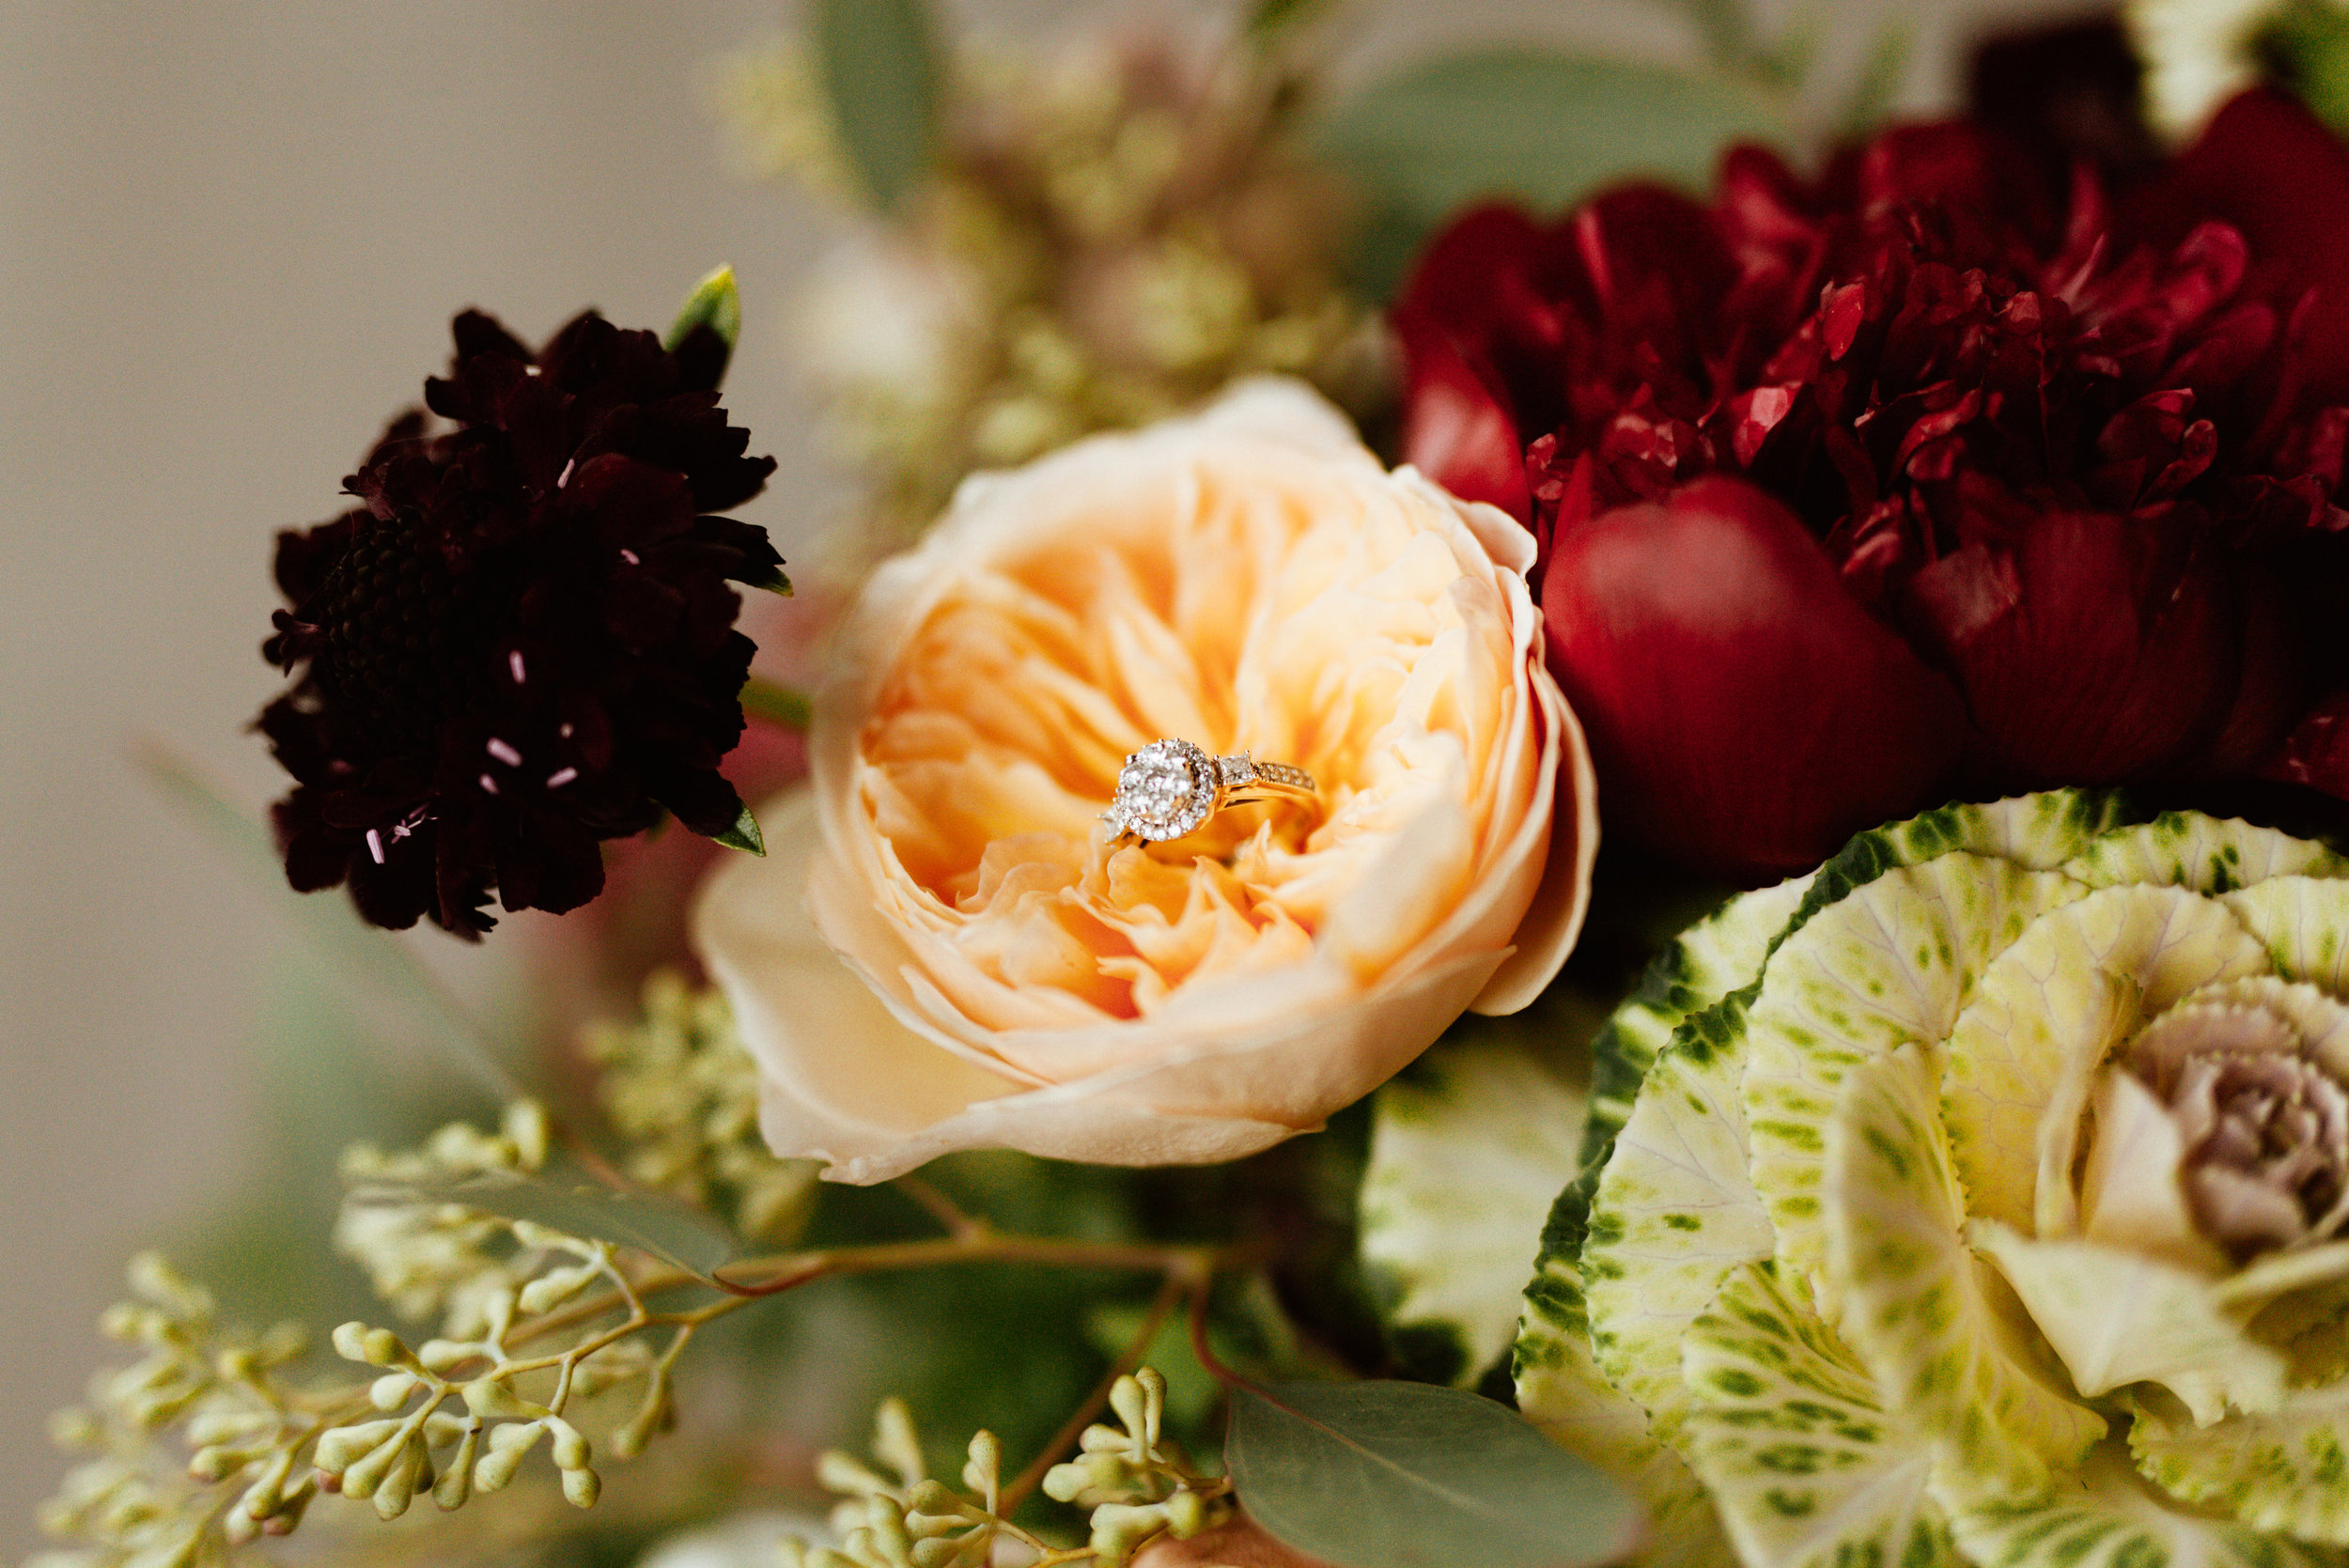 Flowers by Lace and Lilies, Burgundy/Peach wedding flowers, fall/winter wedding bouquet - peonies, garden roses, kale